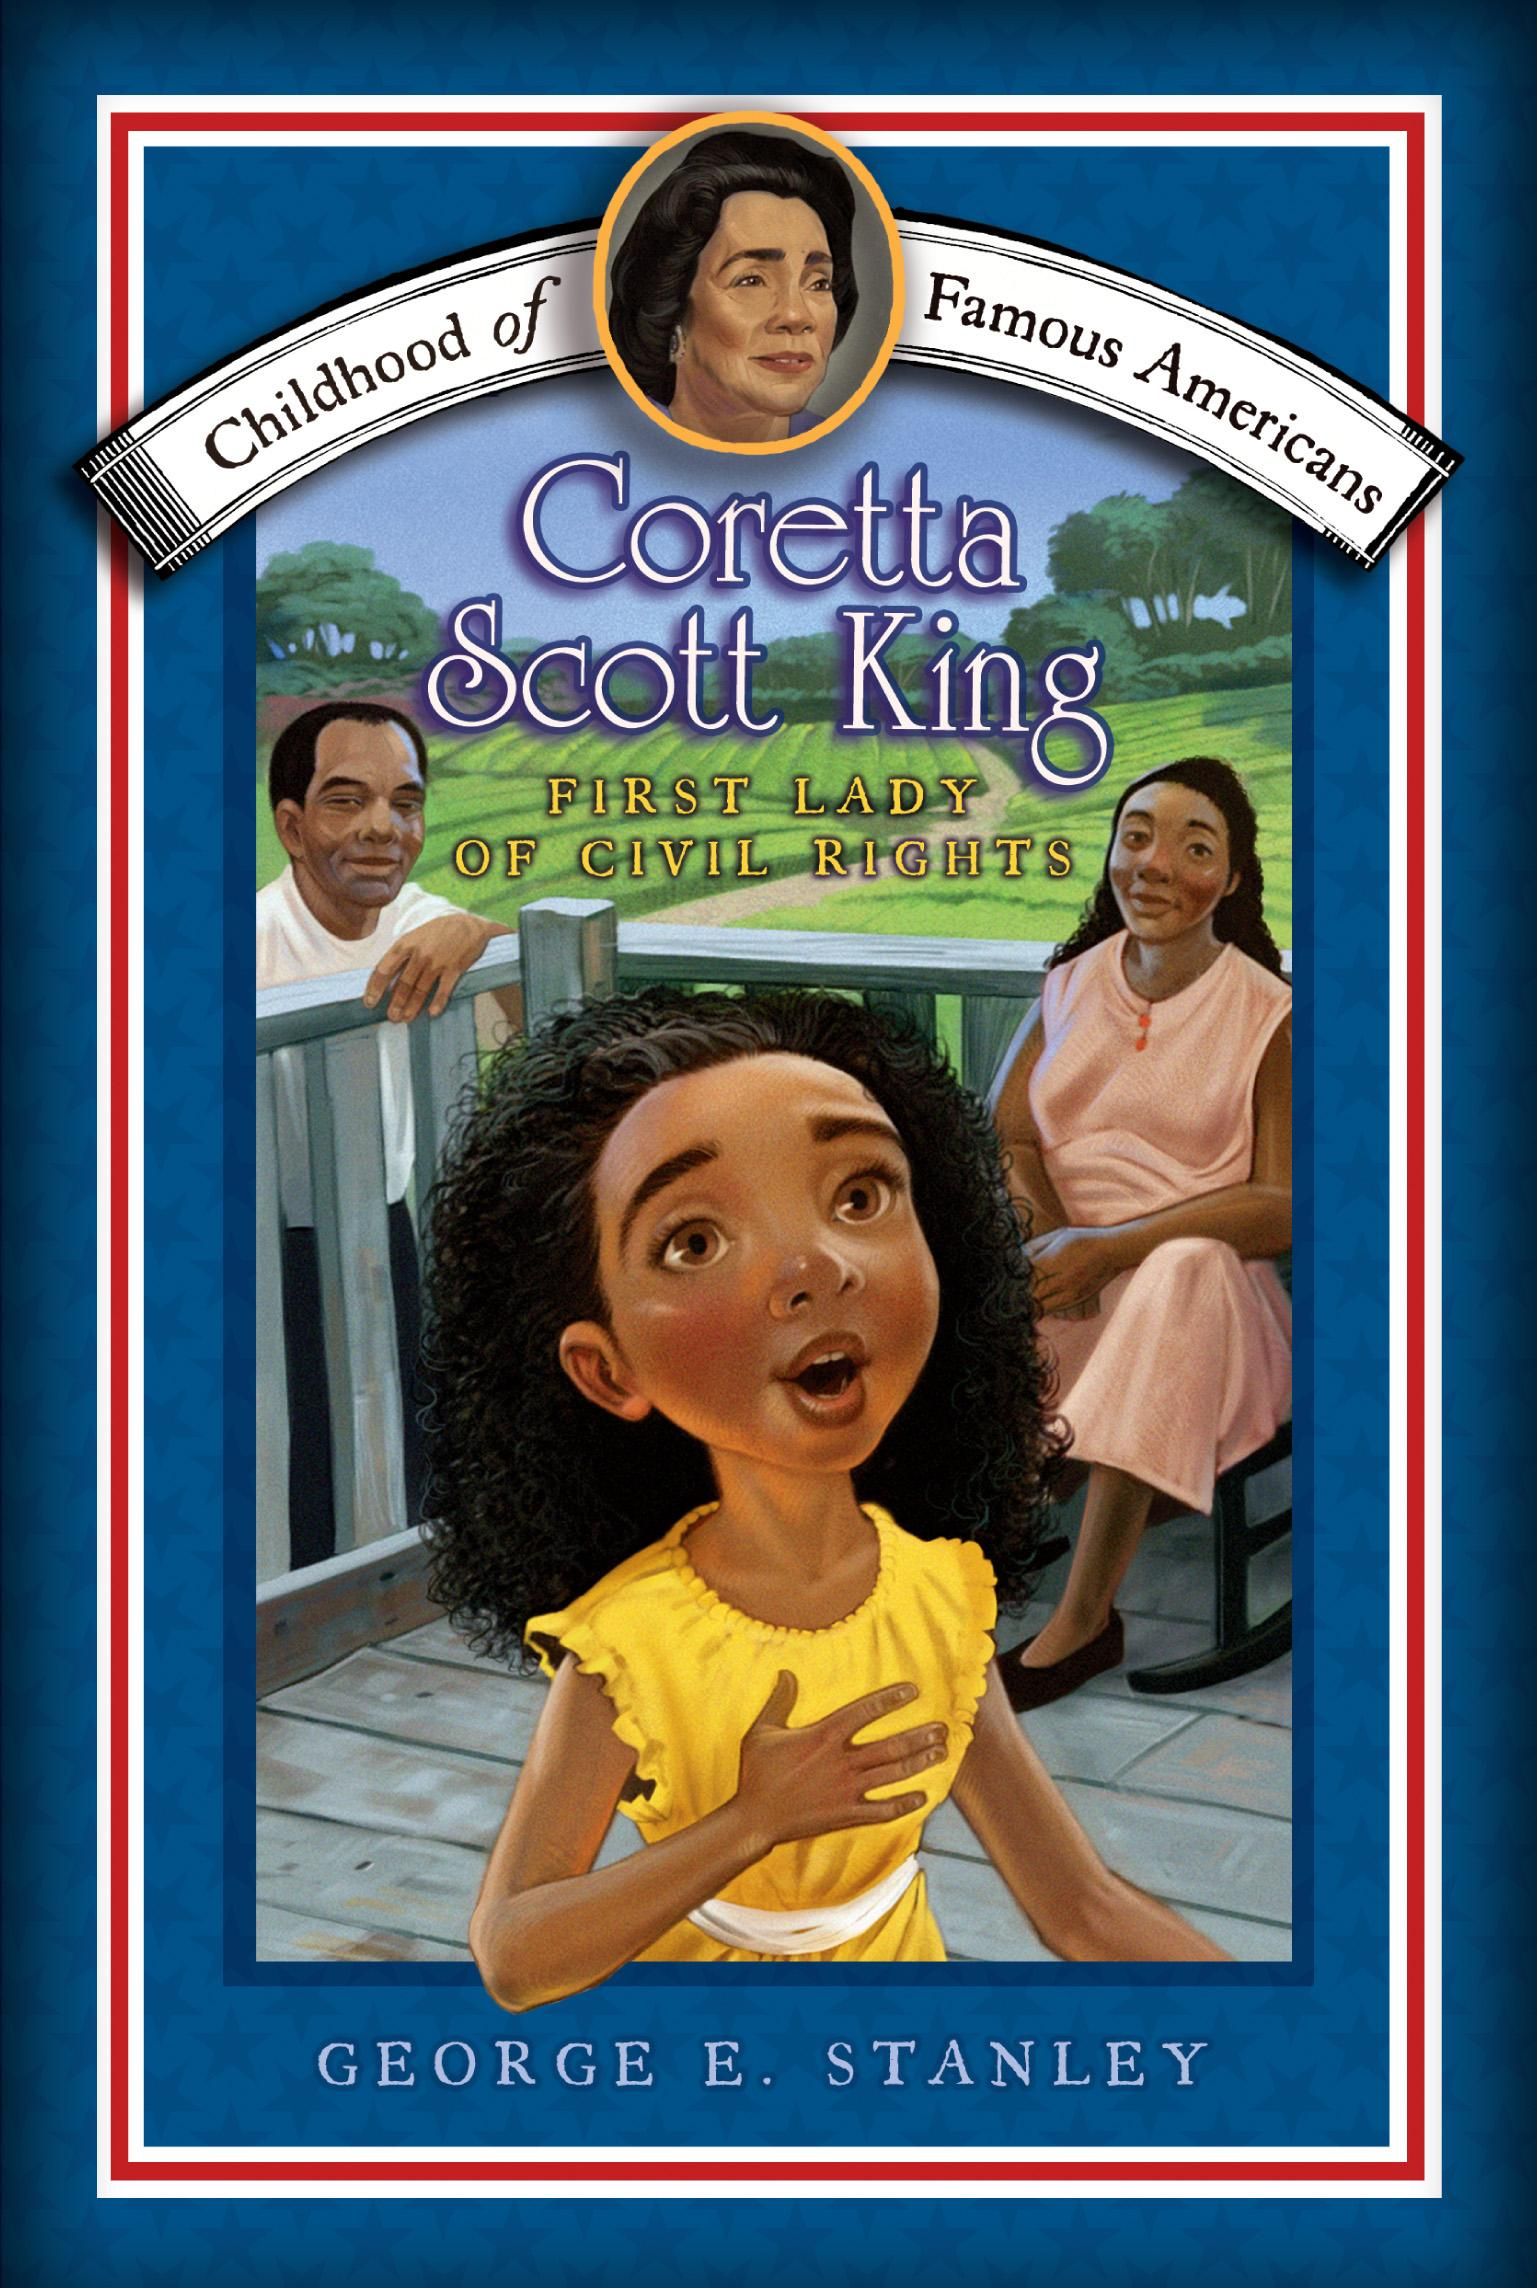 Childhoods of Famous Americans series